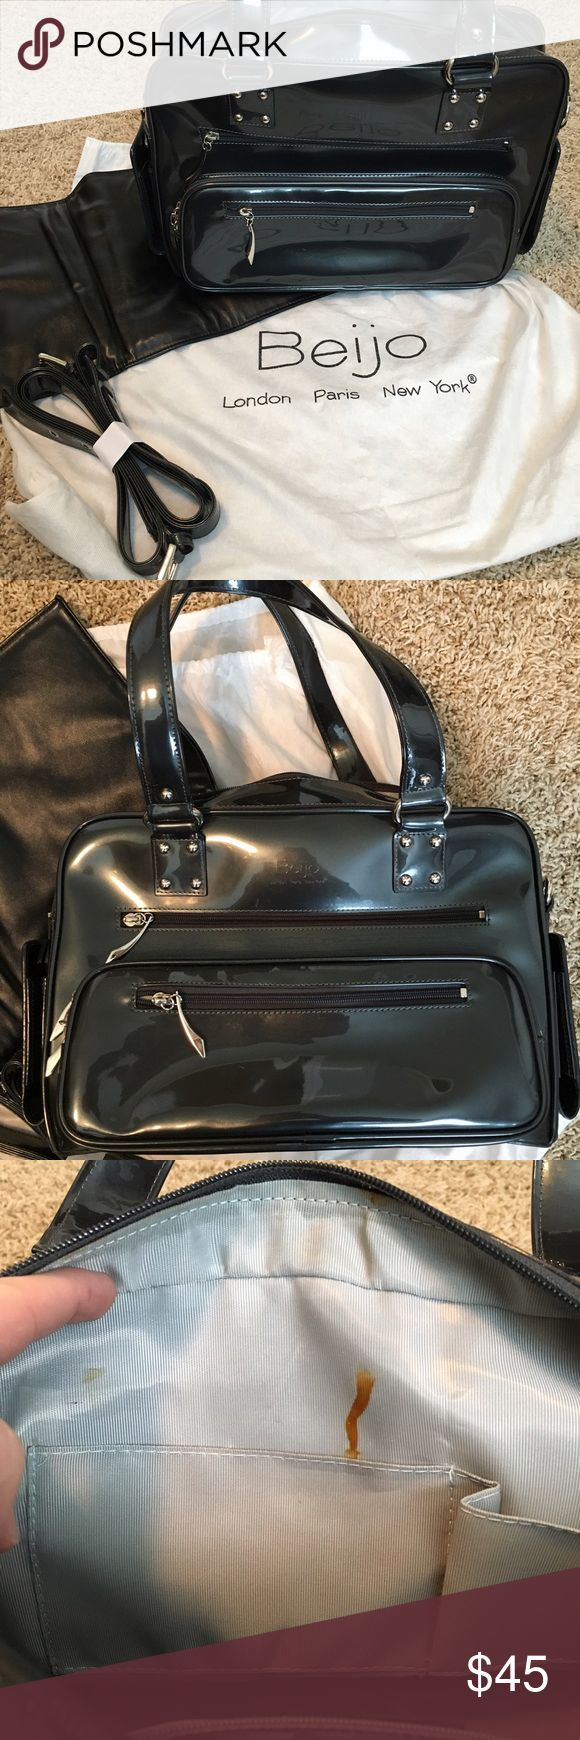 Beijo Style 8321 - Diaper Bag Patent Charcoal/Black Beijo bag. This is in perfect condition other than an interior stain (see photo). Very minimal use and no wear shown on the outside. Changing pad, long strap, and dust bag included. Beijo Bags